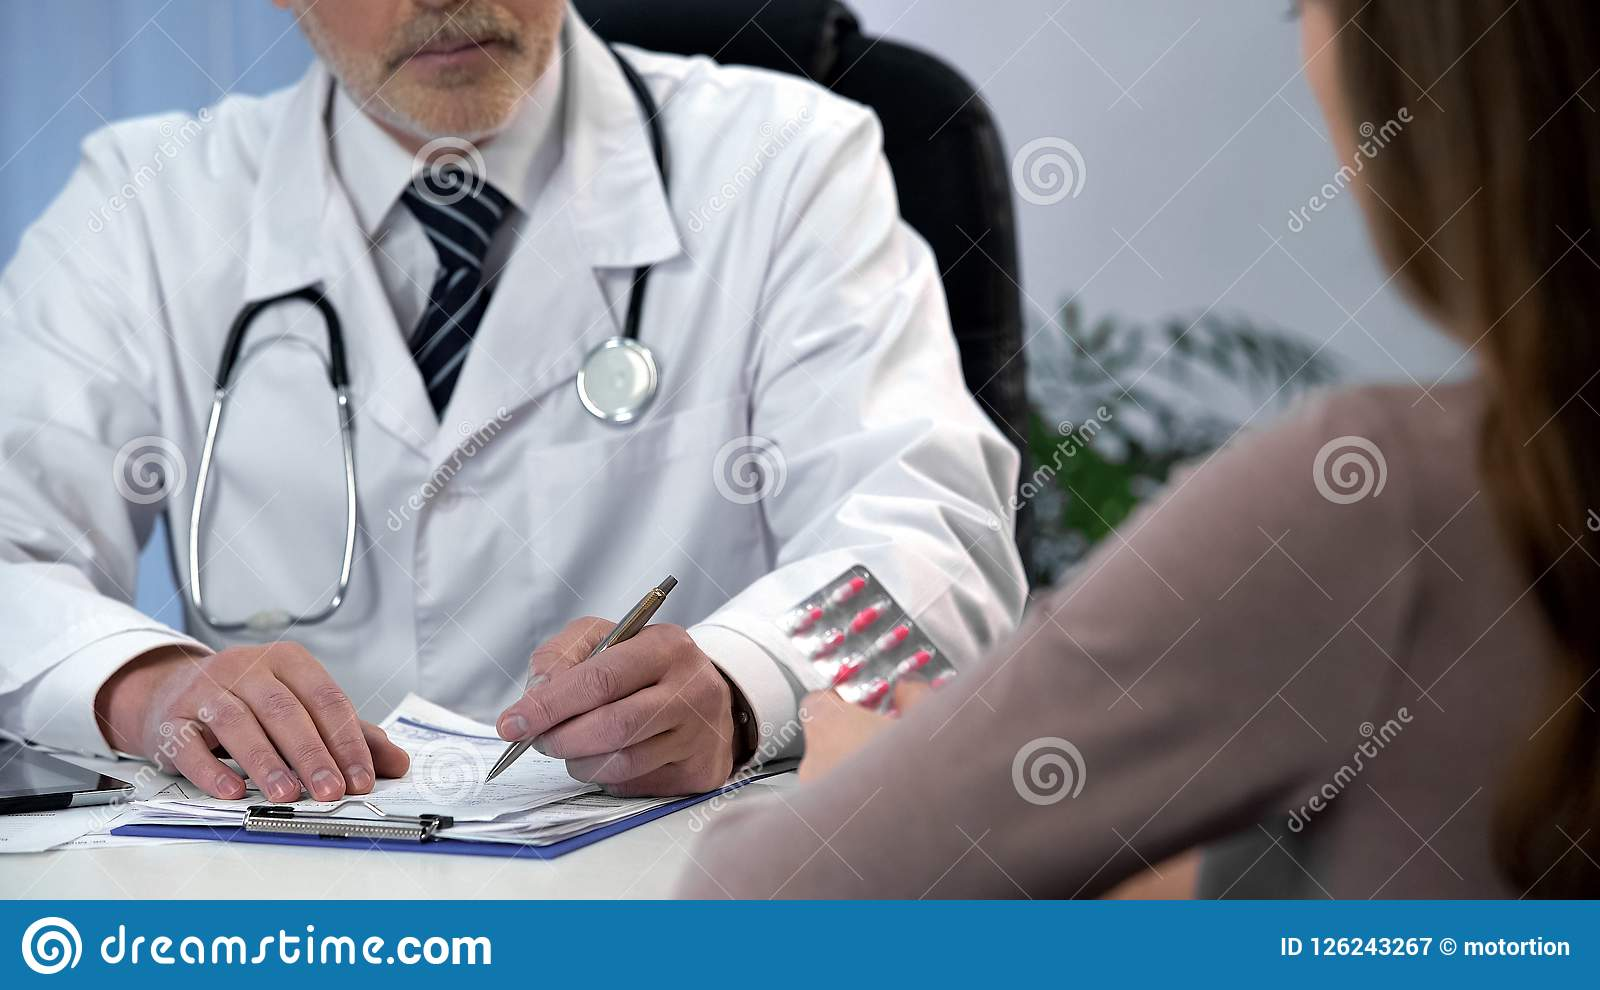 Family doctor prescribing treatment and giving pills to patient, health care